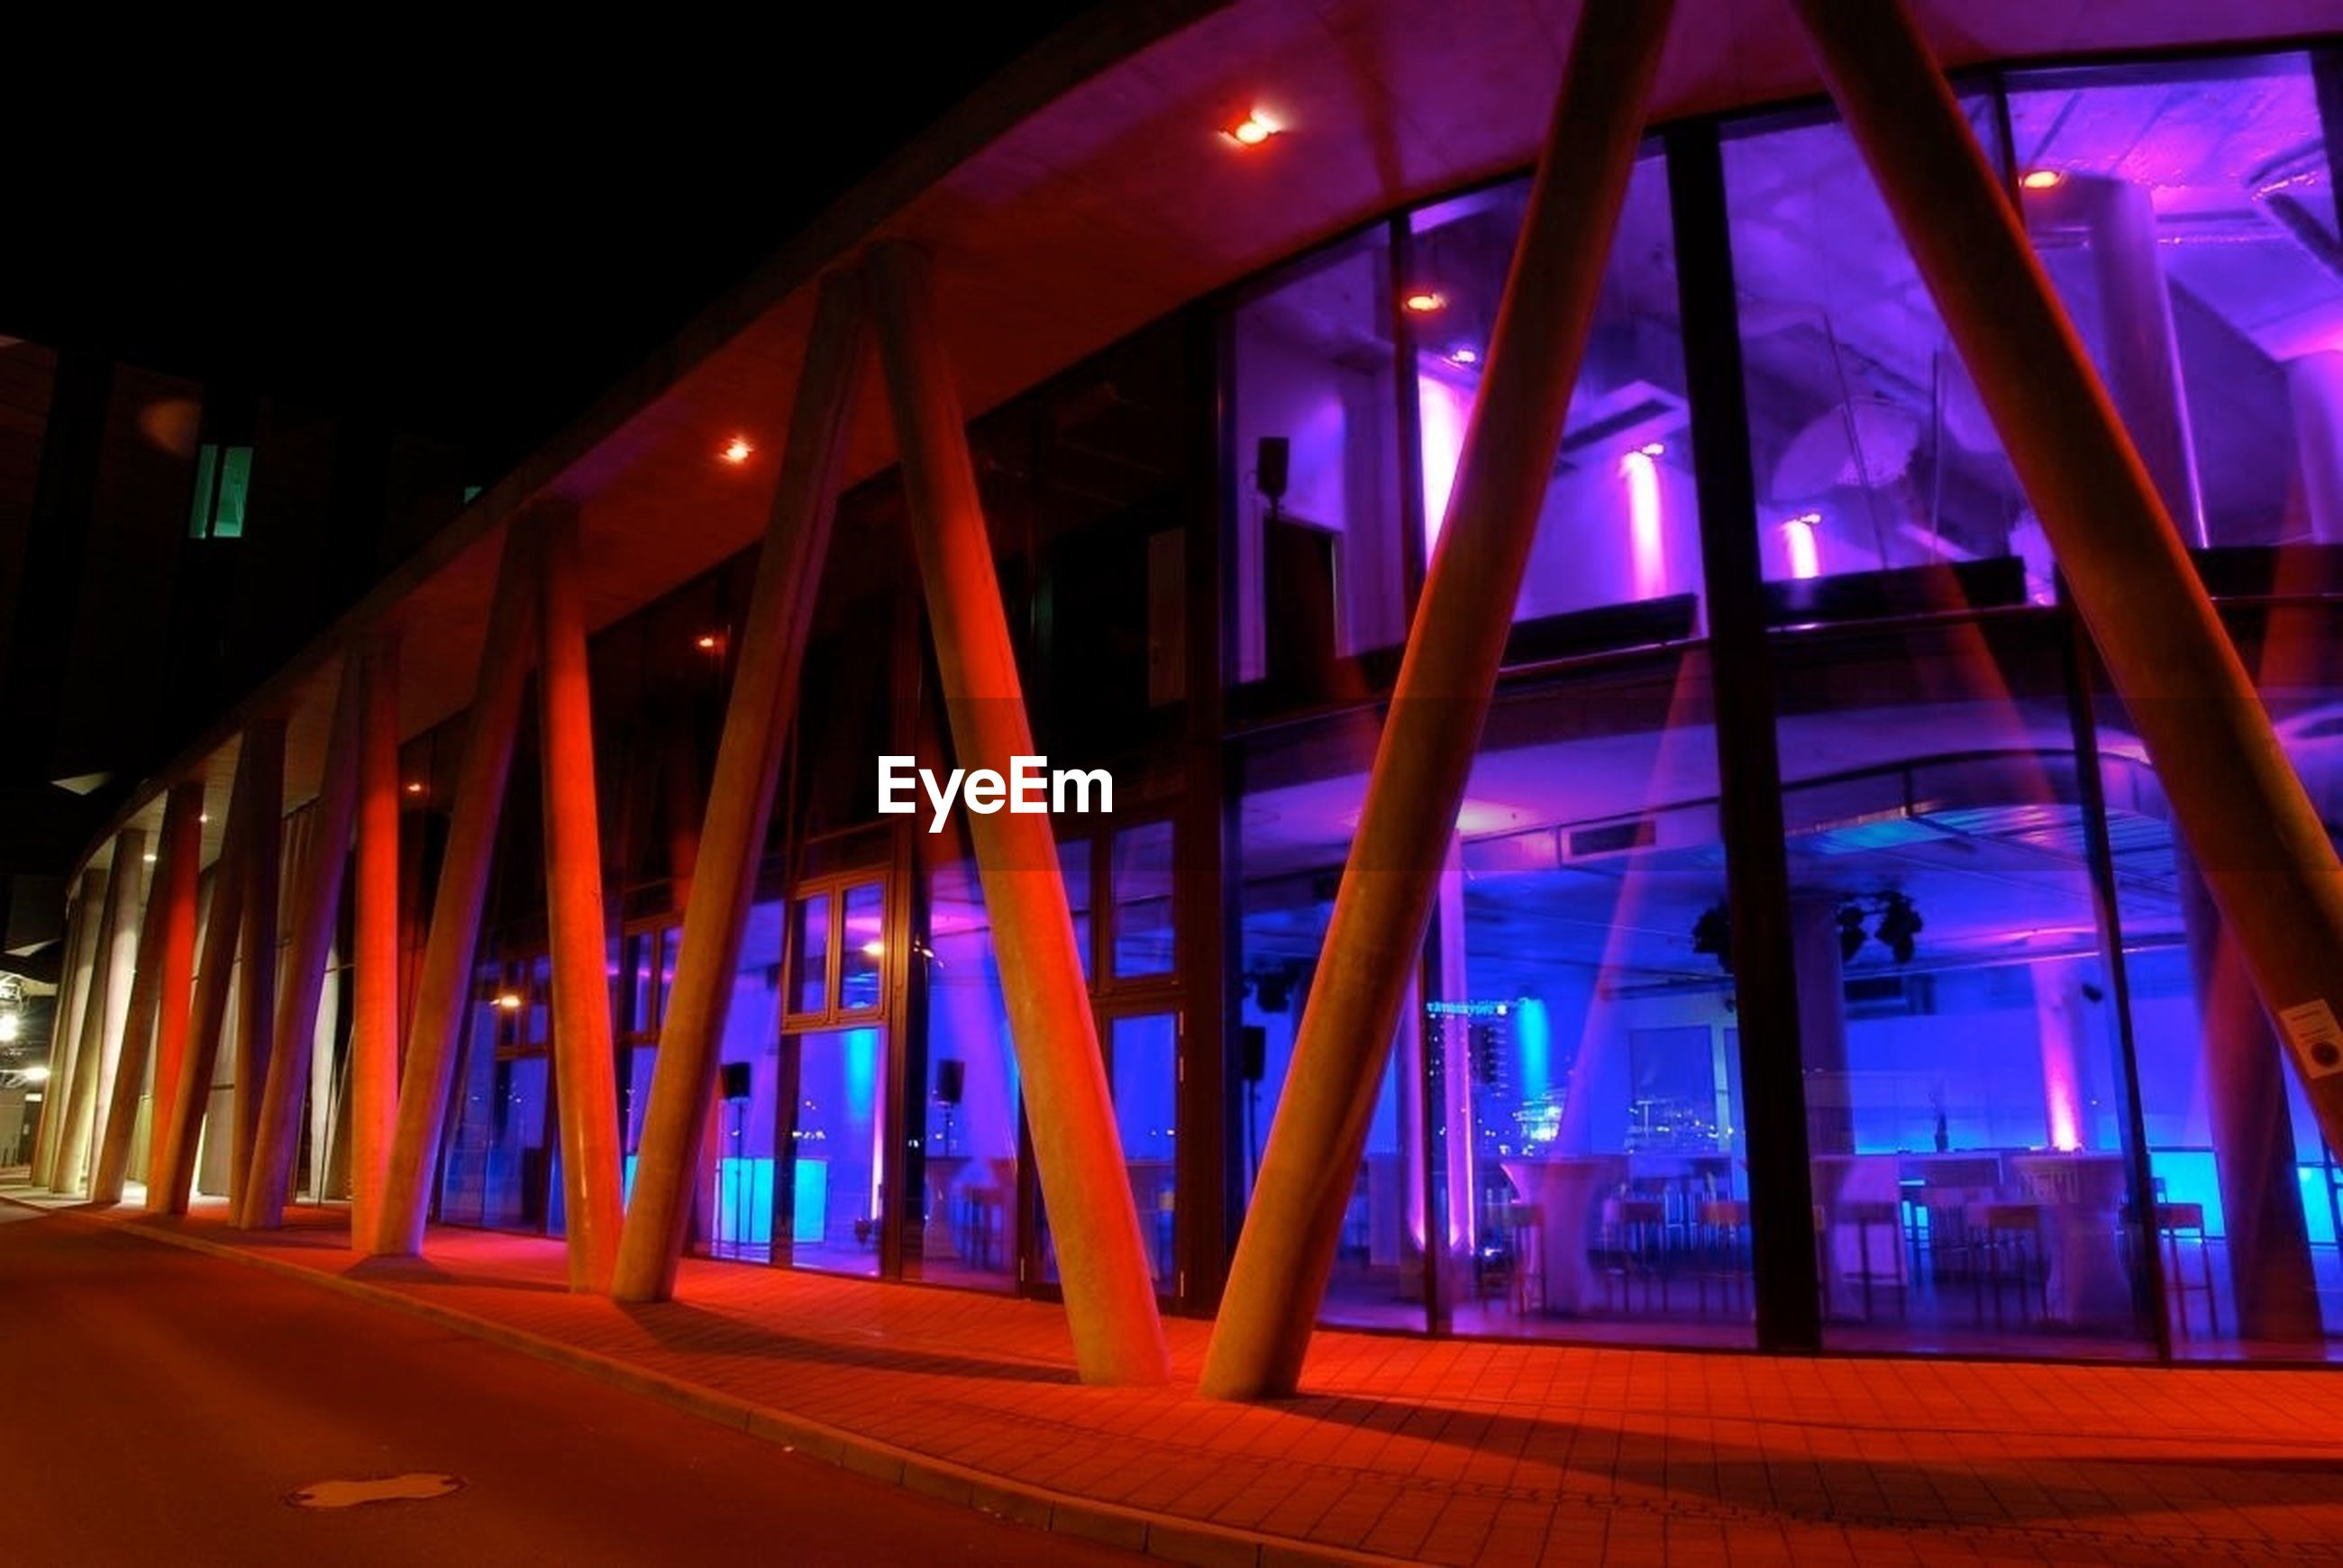 Illuminated walkway by buildings during night